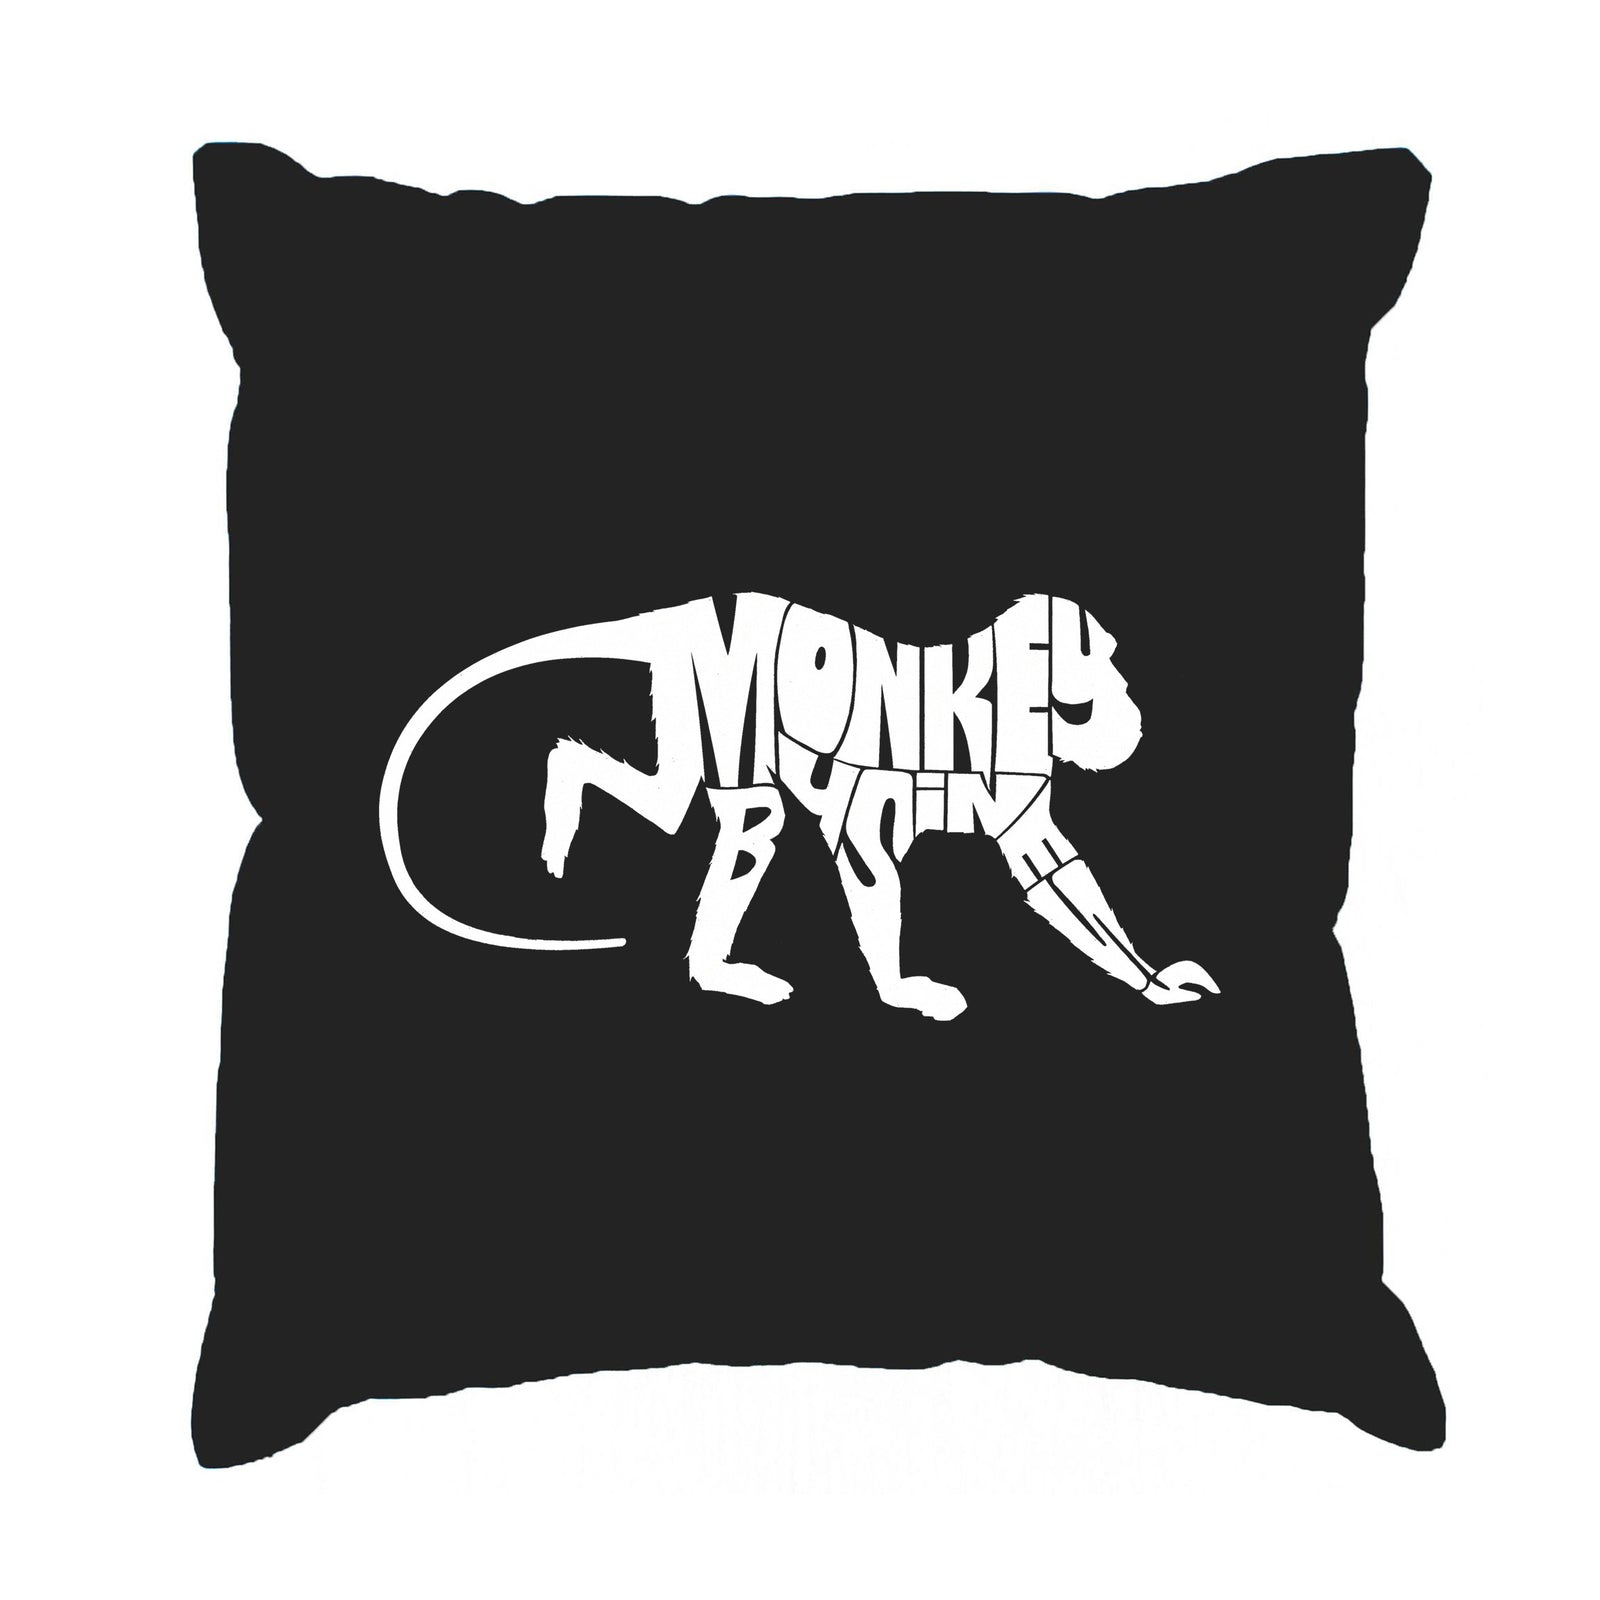 Throw Pillow Cover - Monkey Business